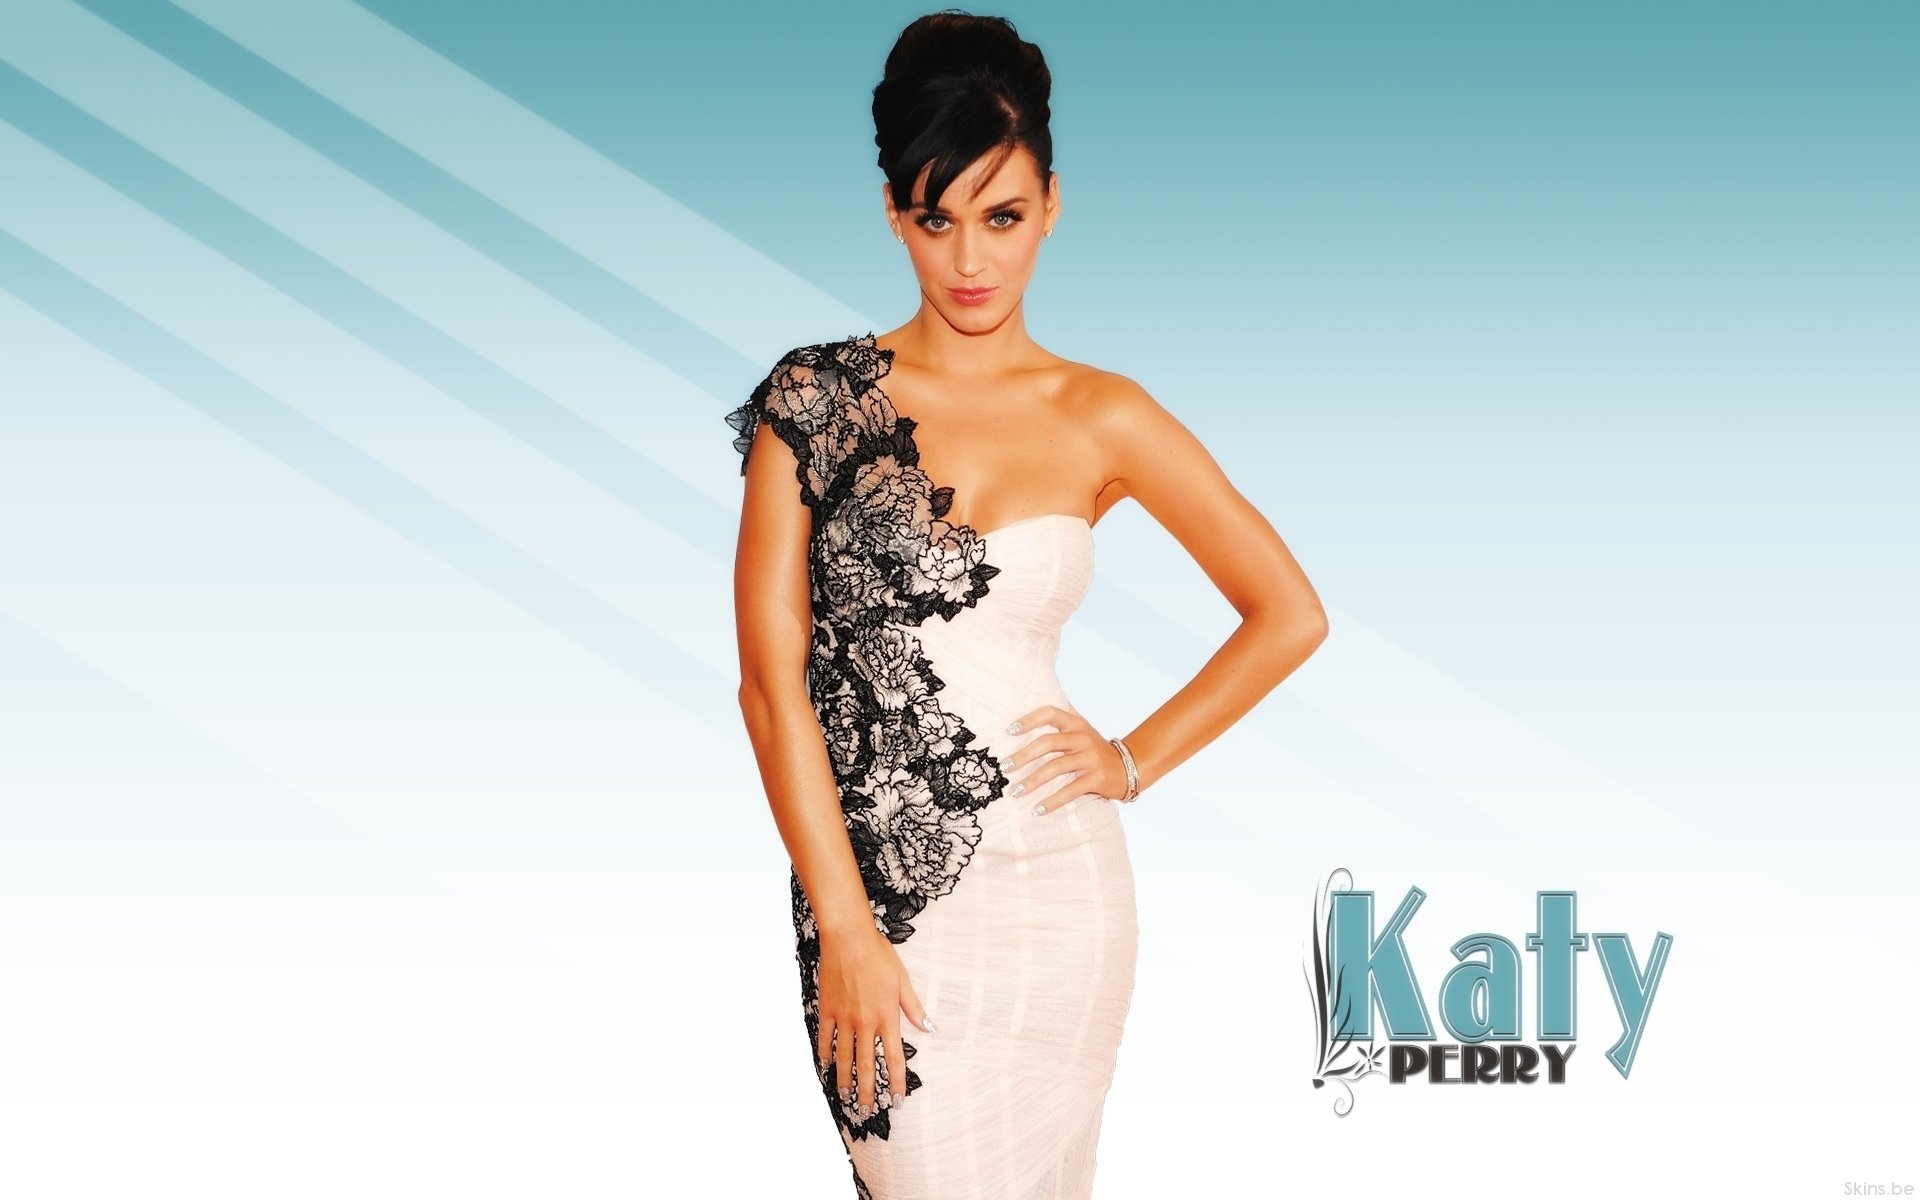 Katy Perry <3 - katy-perry wallpaper